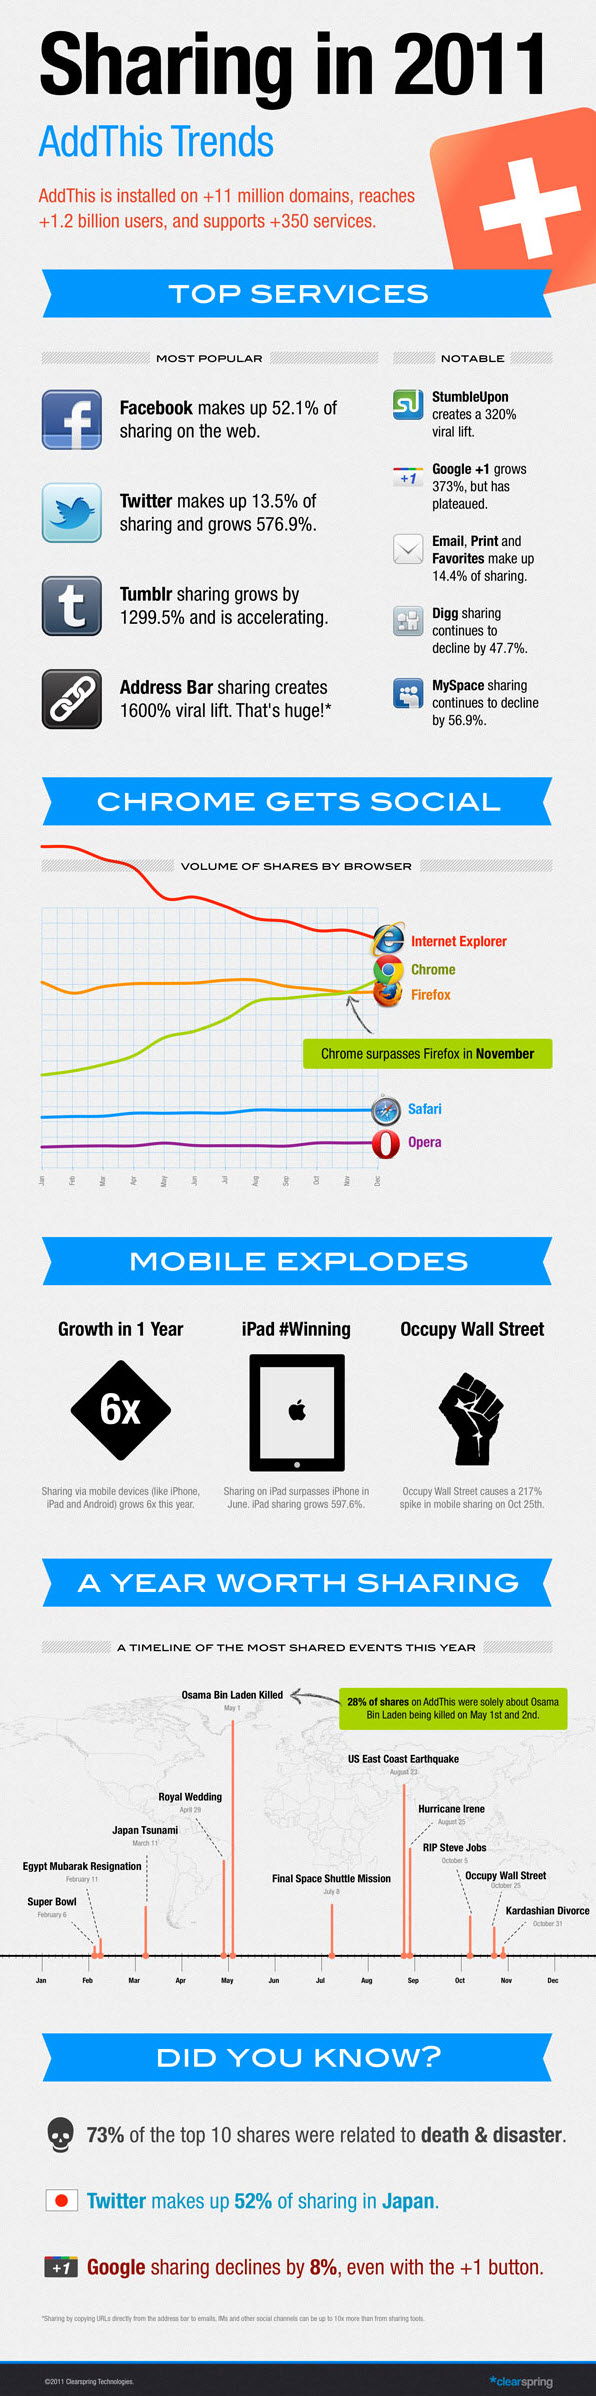 Social Media sharing Trends 2011 Infographic